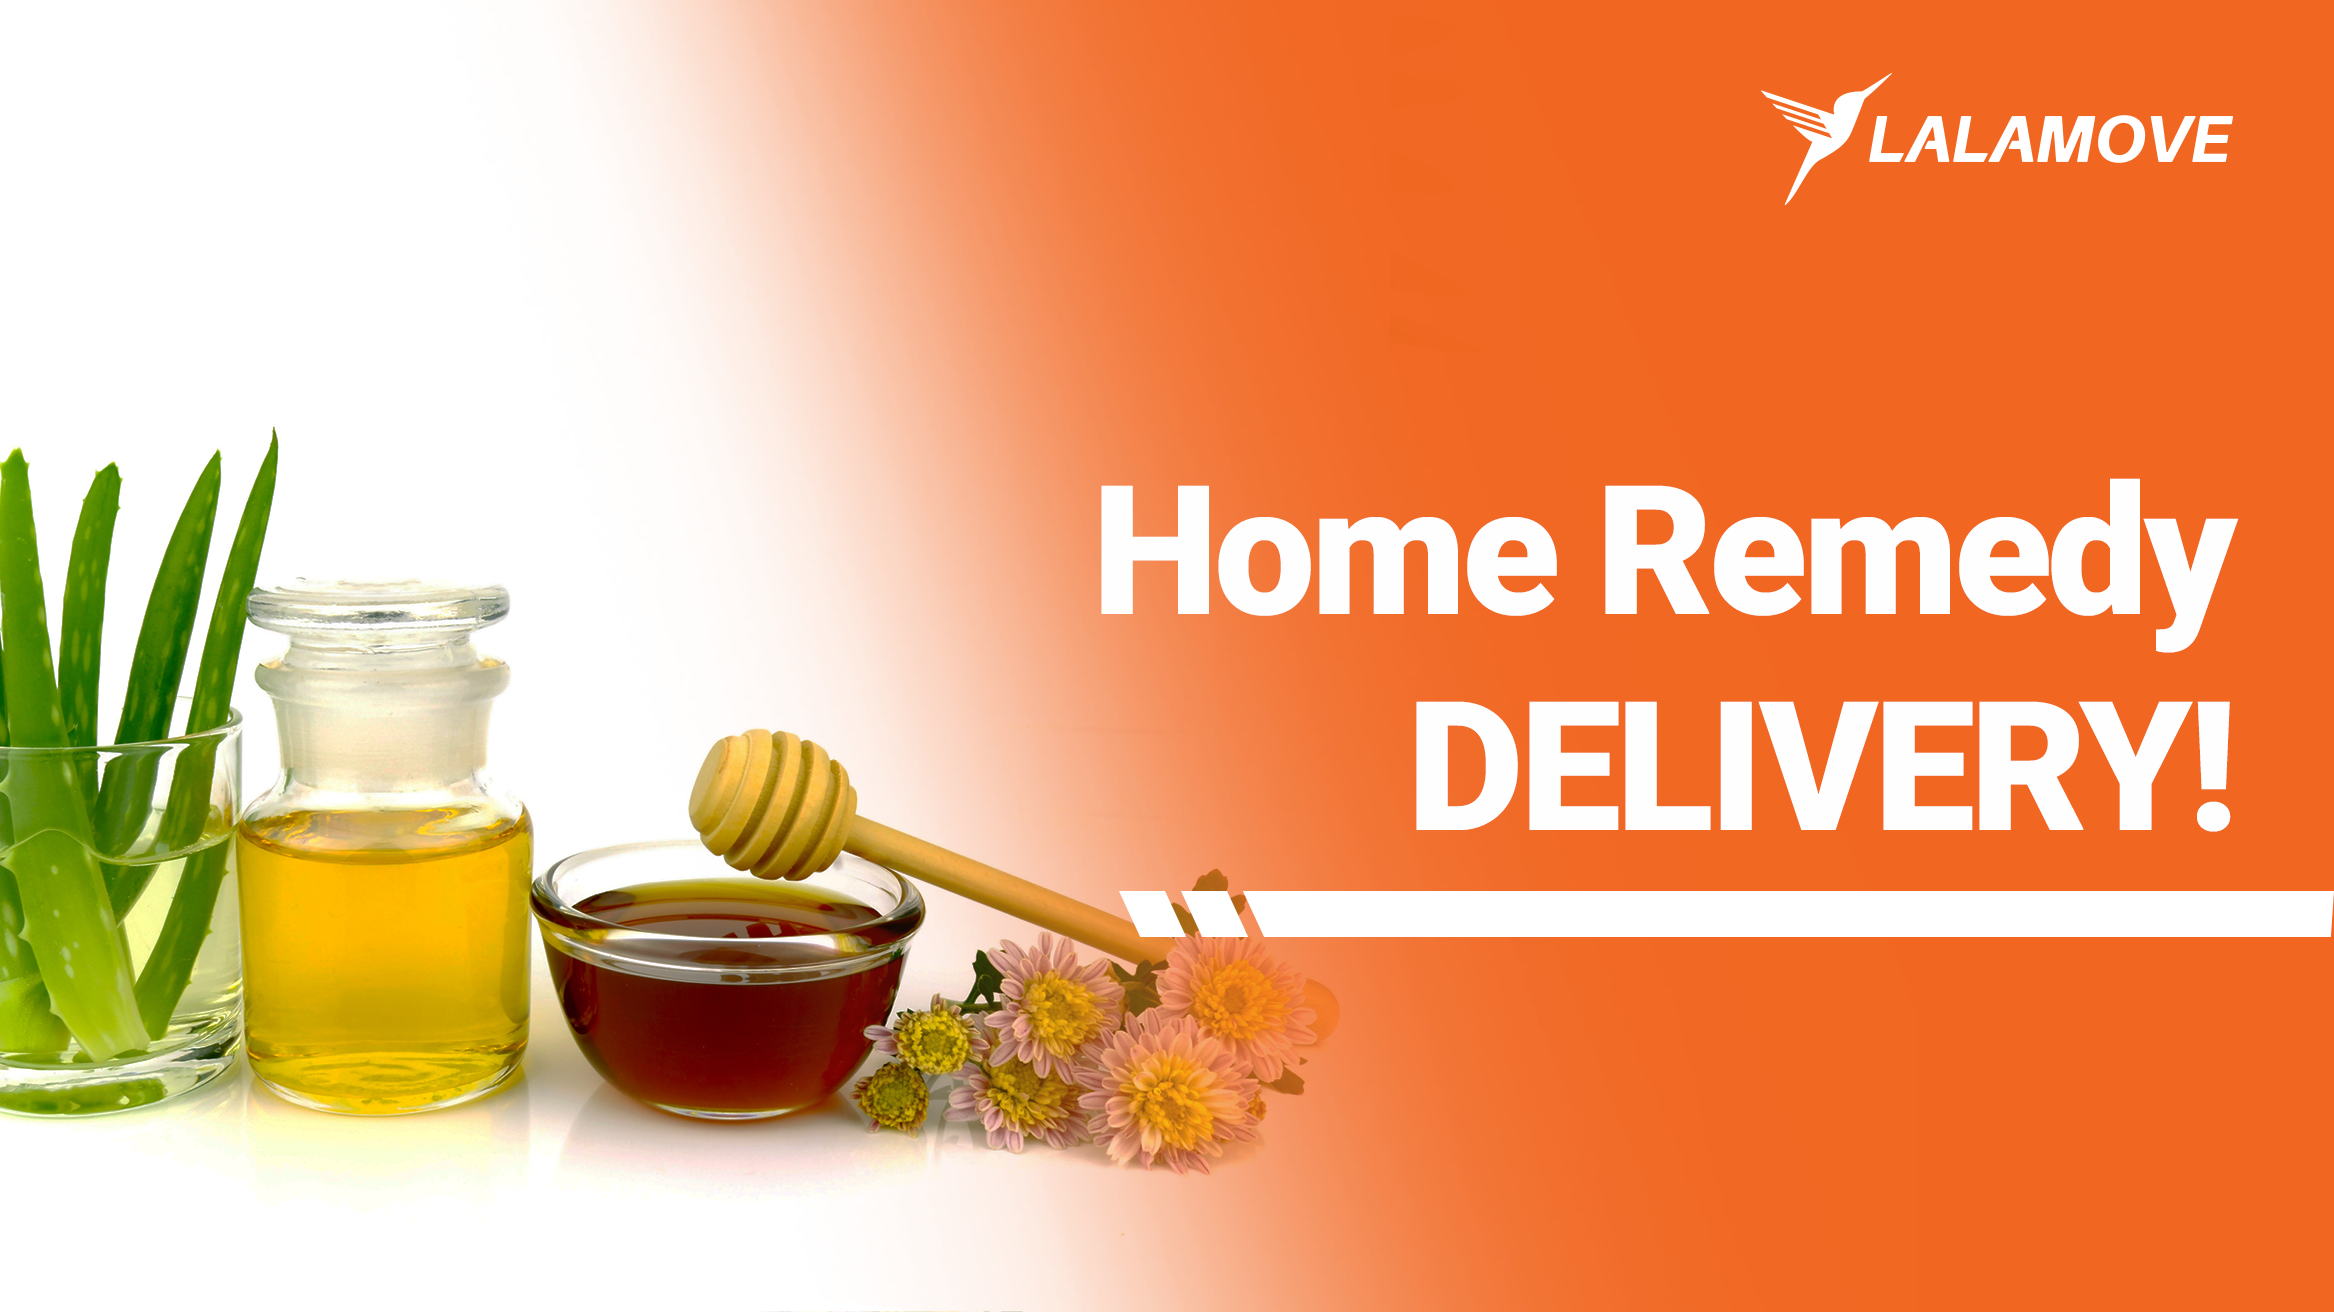 Home Remedies That You Can Have Delivered